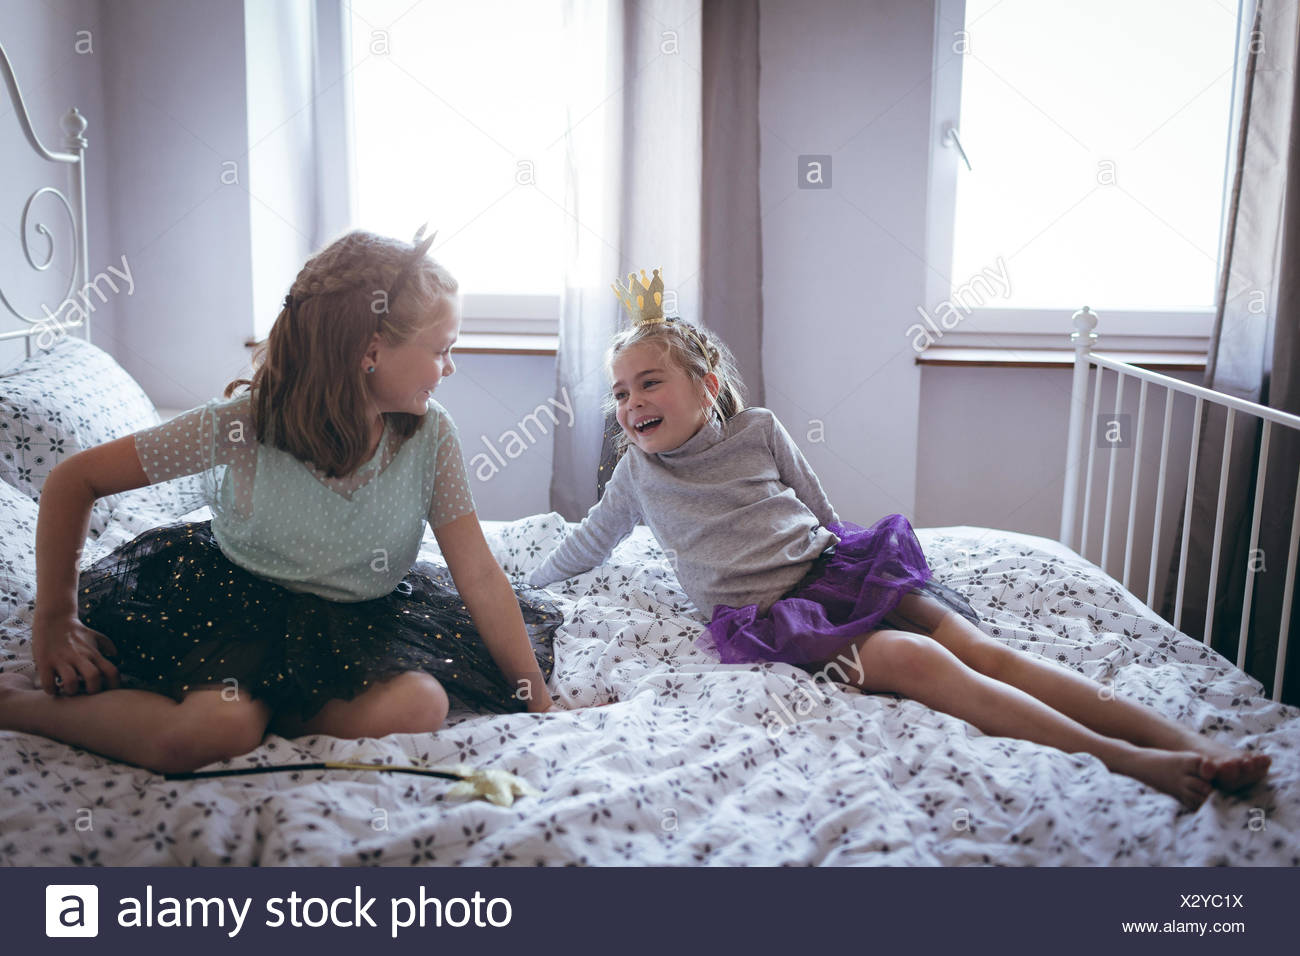 Sisters in costume having  fun on bed - Stock Image